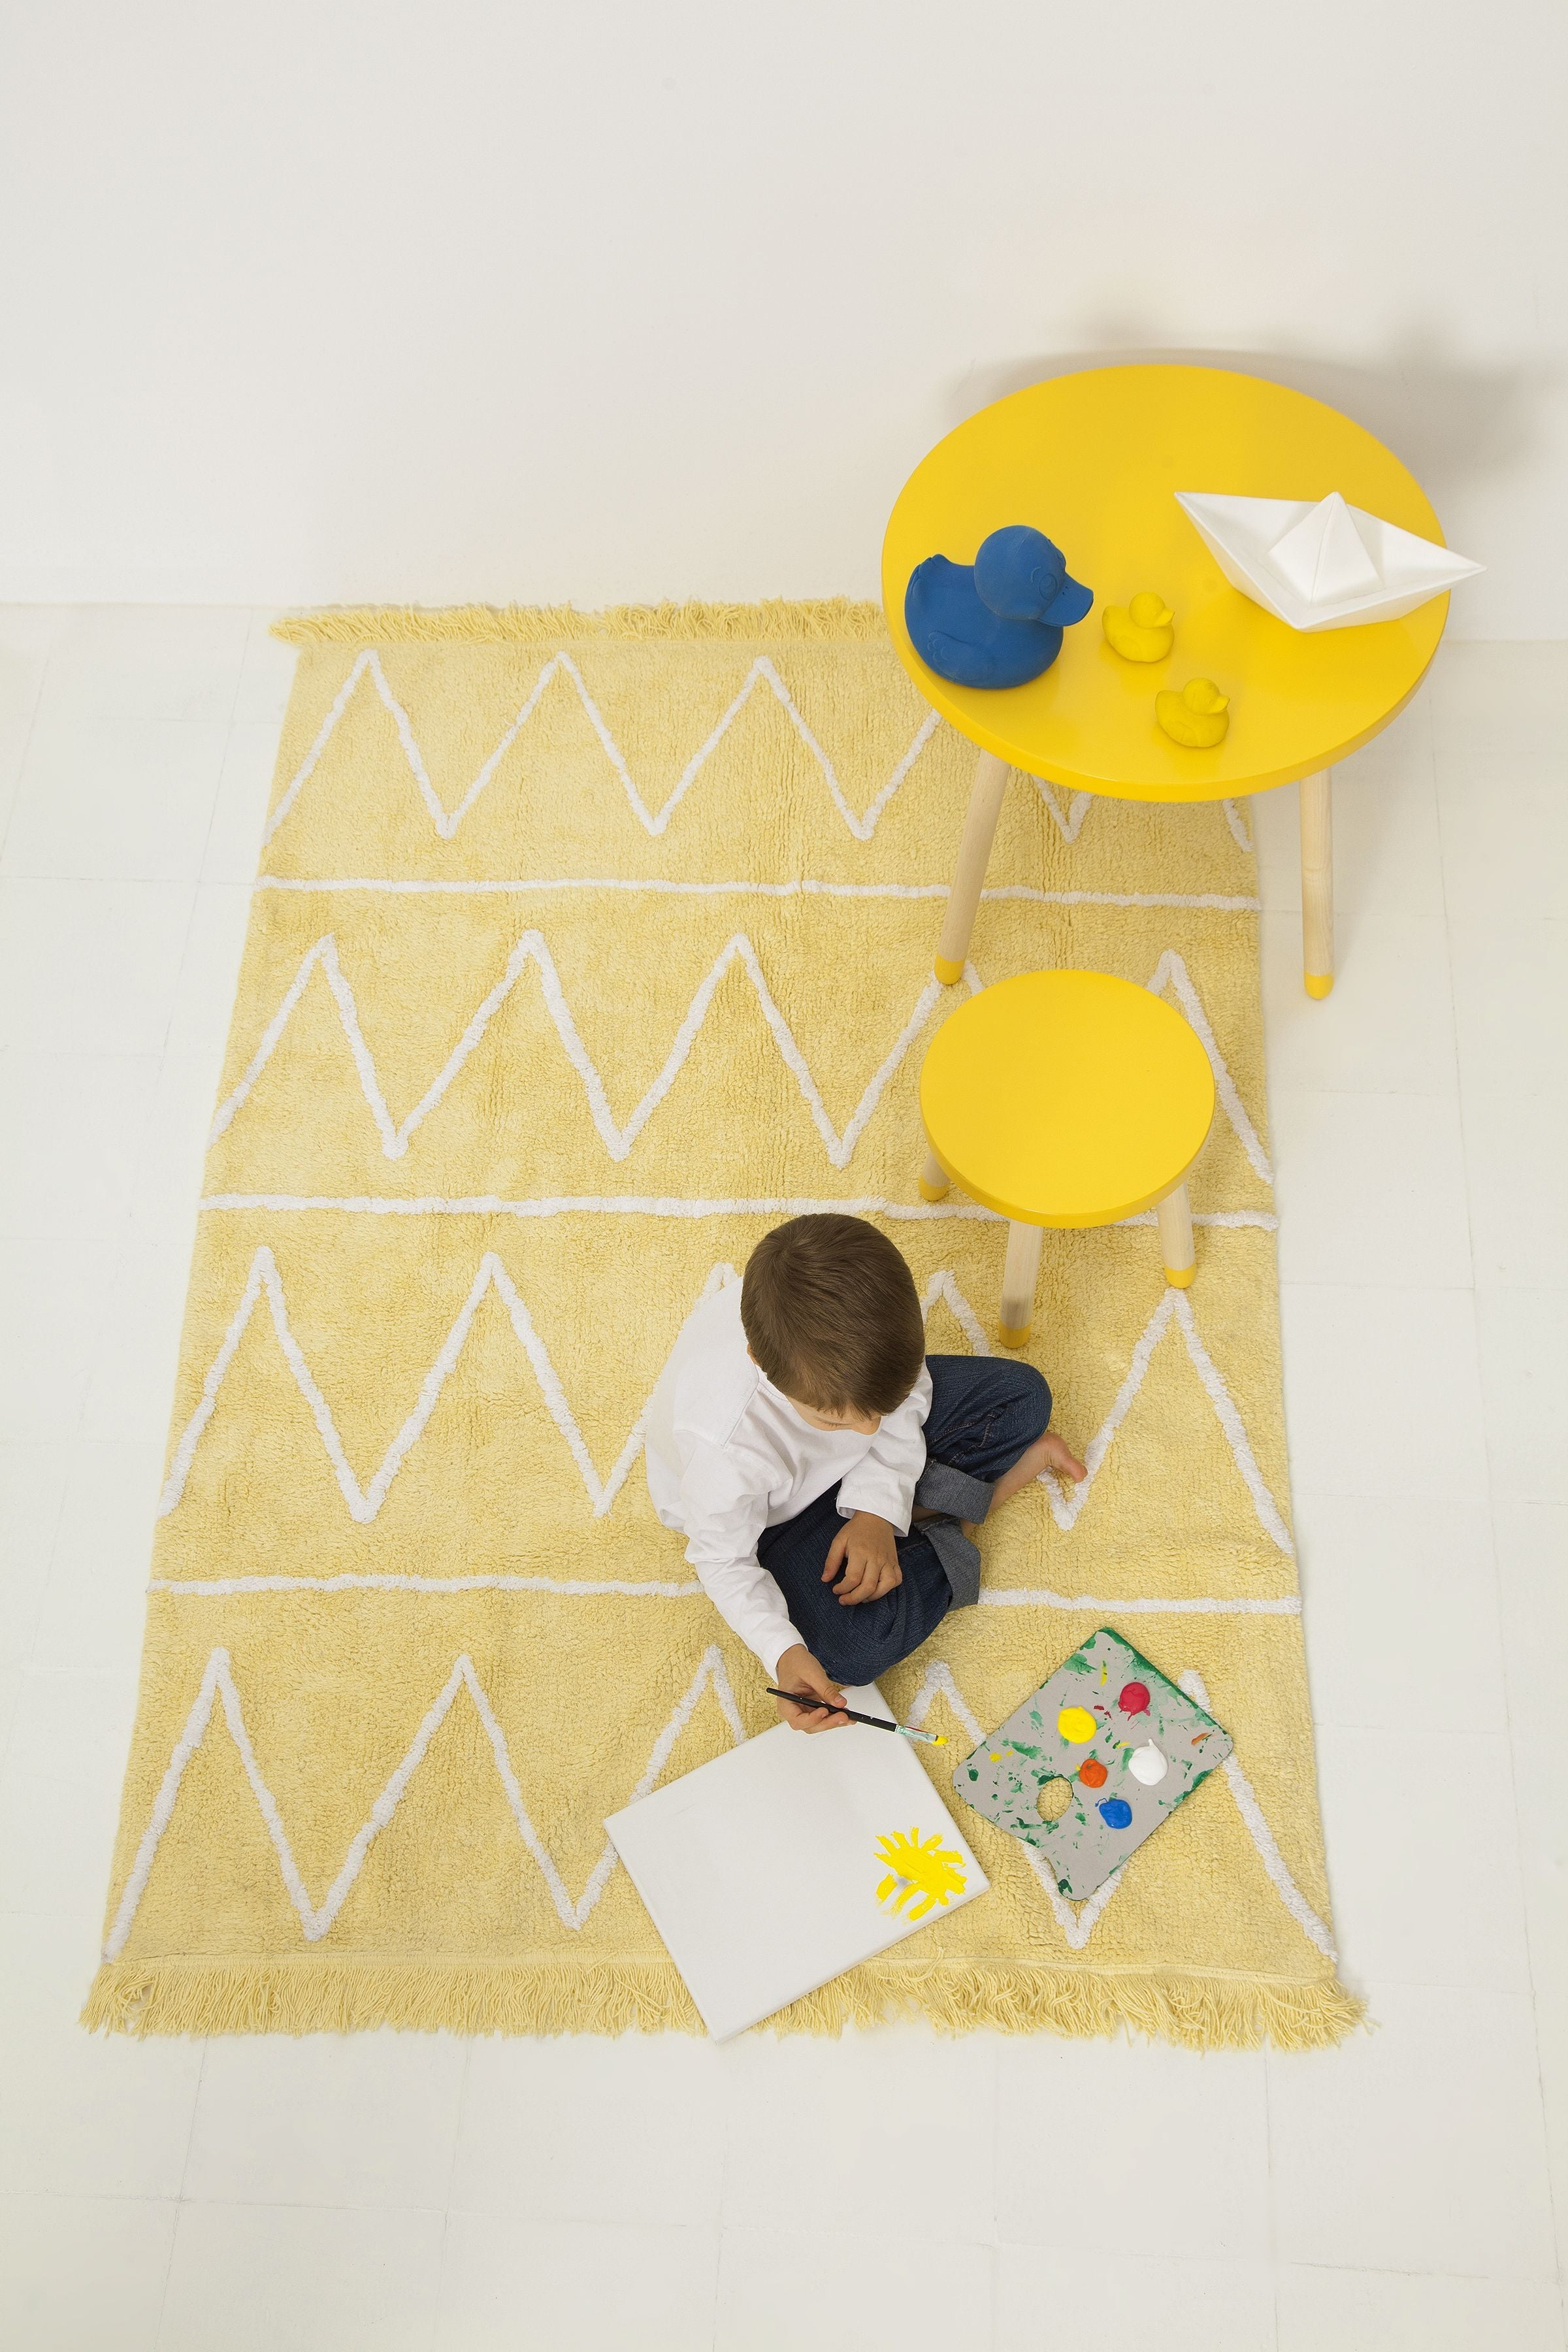 Hippy Rug in Yellow design by Lorena Canals